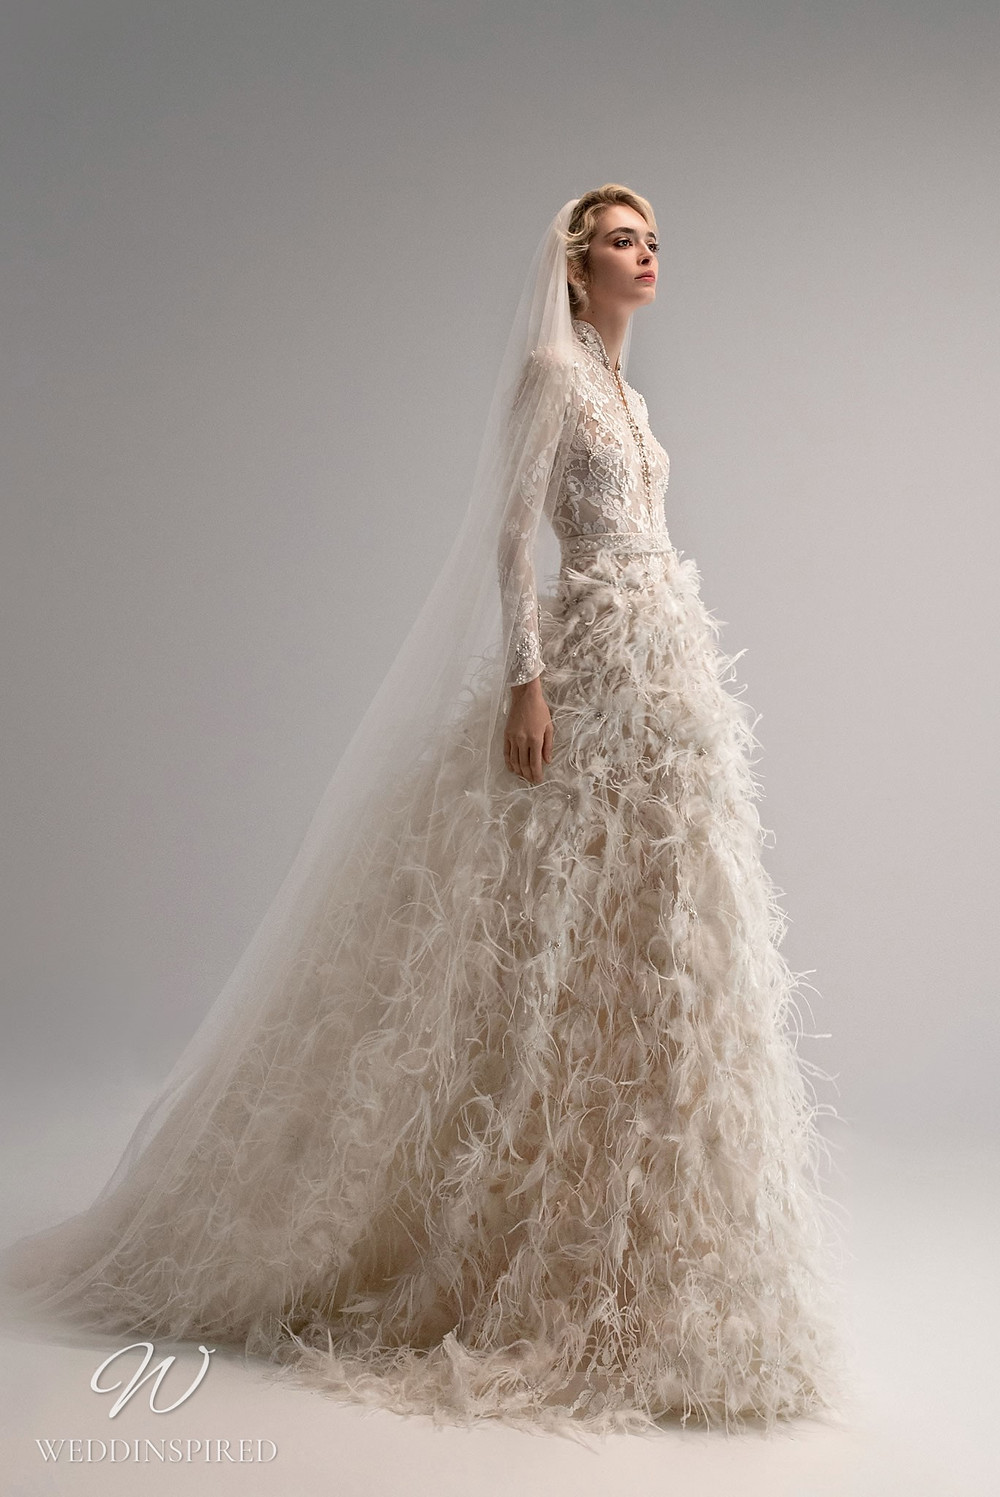 An Ersa Atelier 2021 feather ball gown wedding dress with a lace bodice and long sleeves